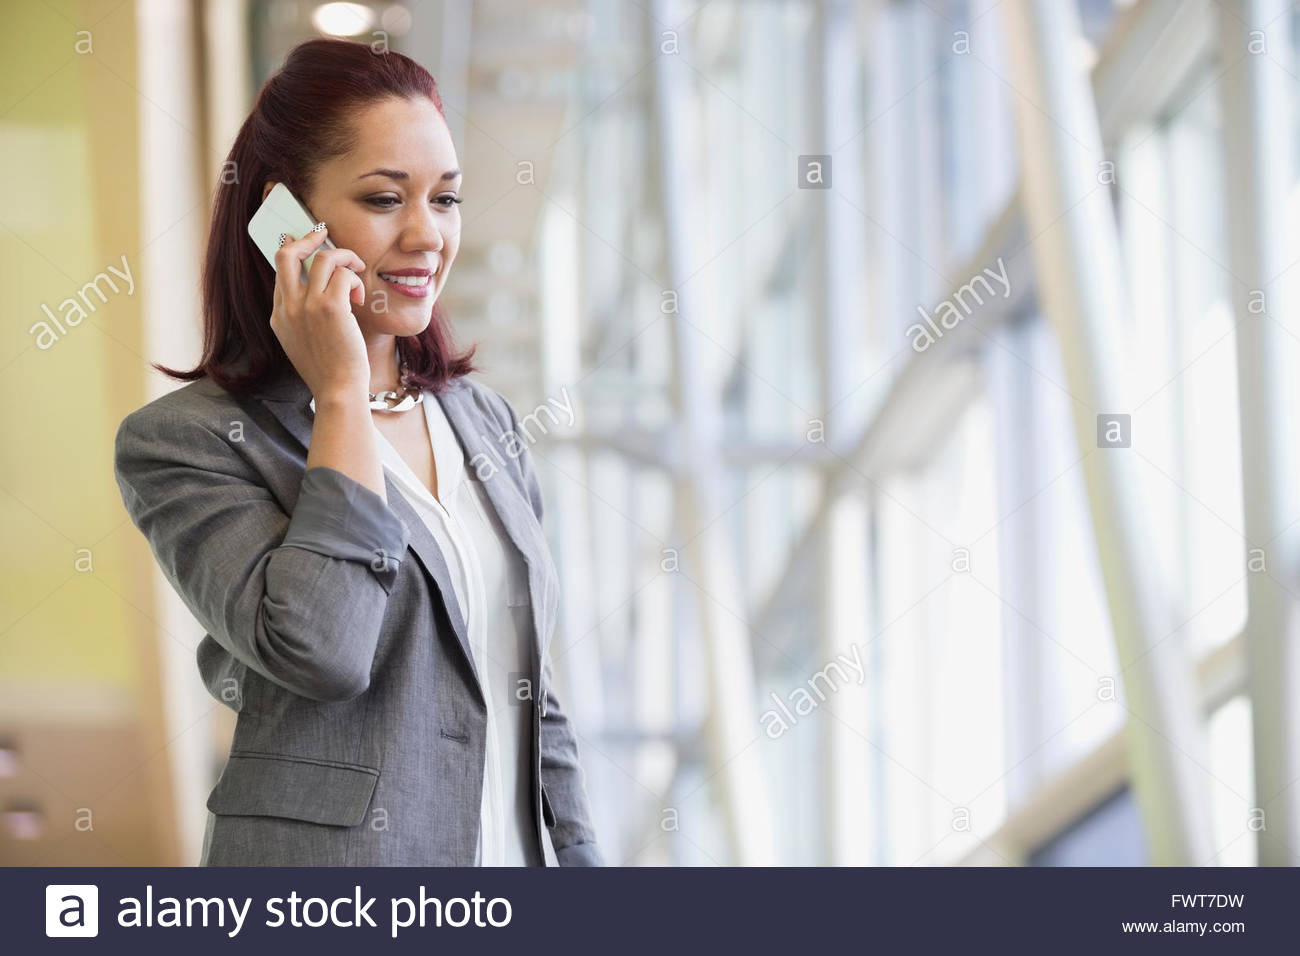 Young businesswoman answering mobile phone in office Photo Stock